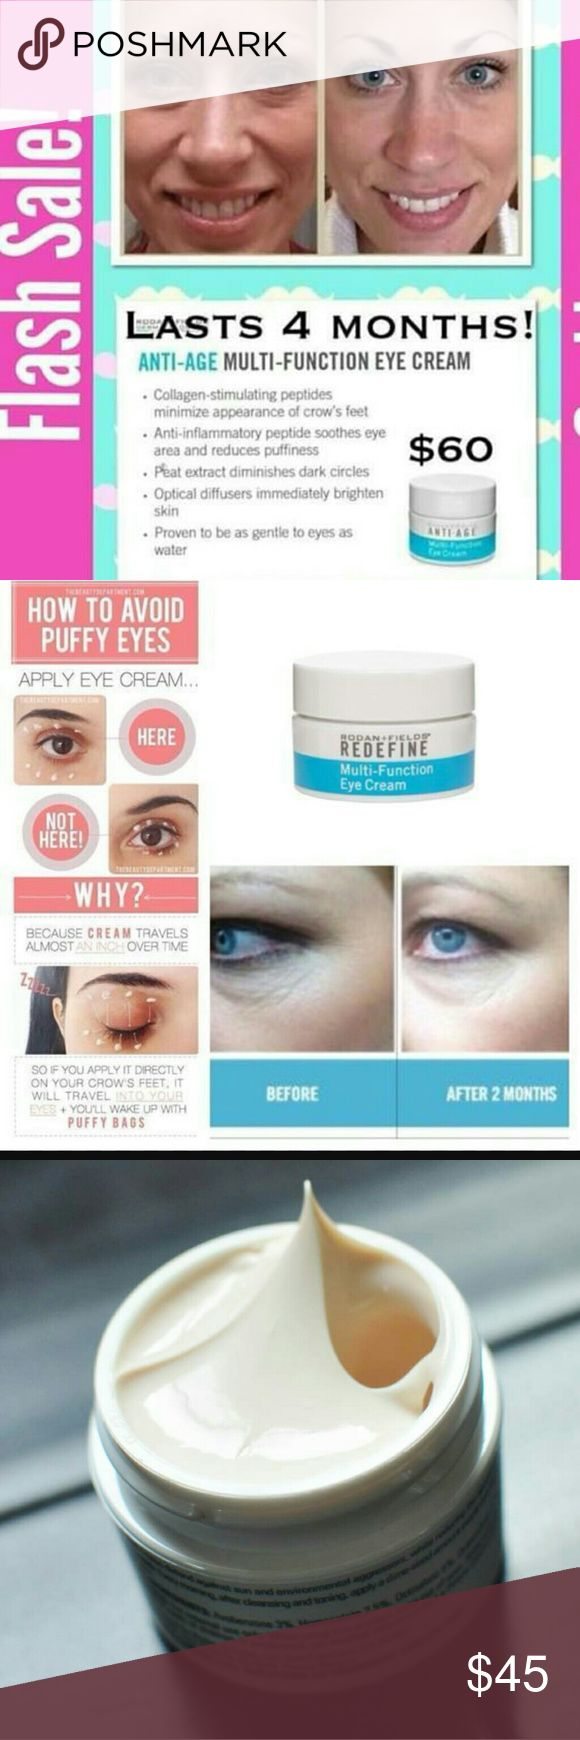 ?BRAND NEW Rodan + Fields Multi-Function Eye Cream Rodan + Fields an award winning company. Number one in anti- aging. Created by 2 dermatologists. REDEFINE Multi-Function Eye Cream combines powerful peptides to minimize the appearance of crow?s feet and help reduce the appearance of puffiness and dark circles under your eyes. This formula is ideal for maintaining the delicate skin around the eyes and special optical diffusers noticeably brighten the eye area. ??SAVE $15 now. ?BONUS…